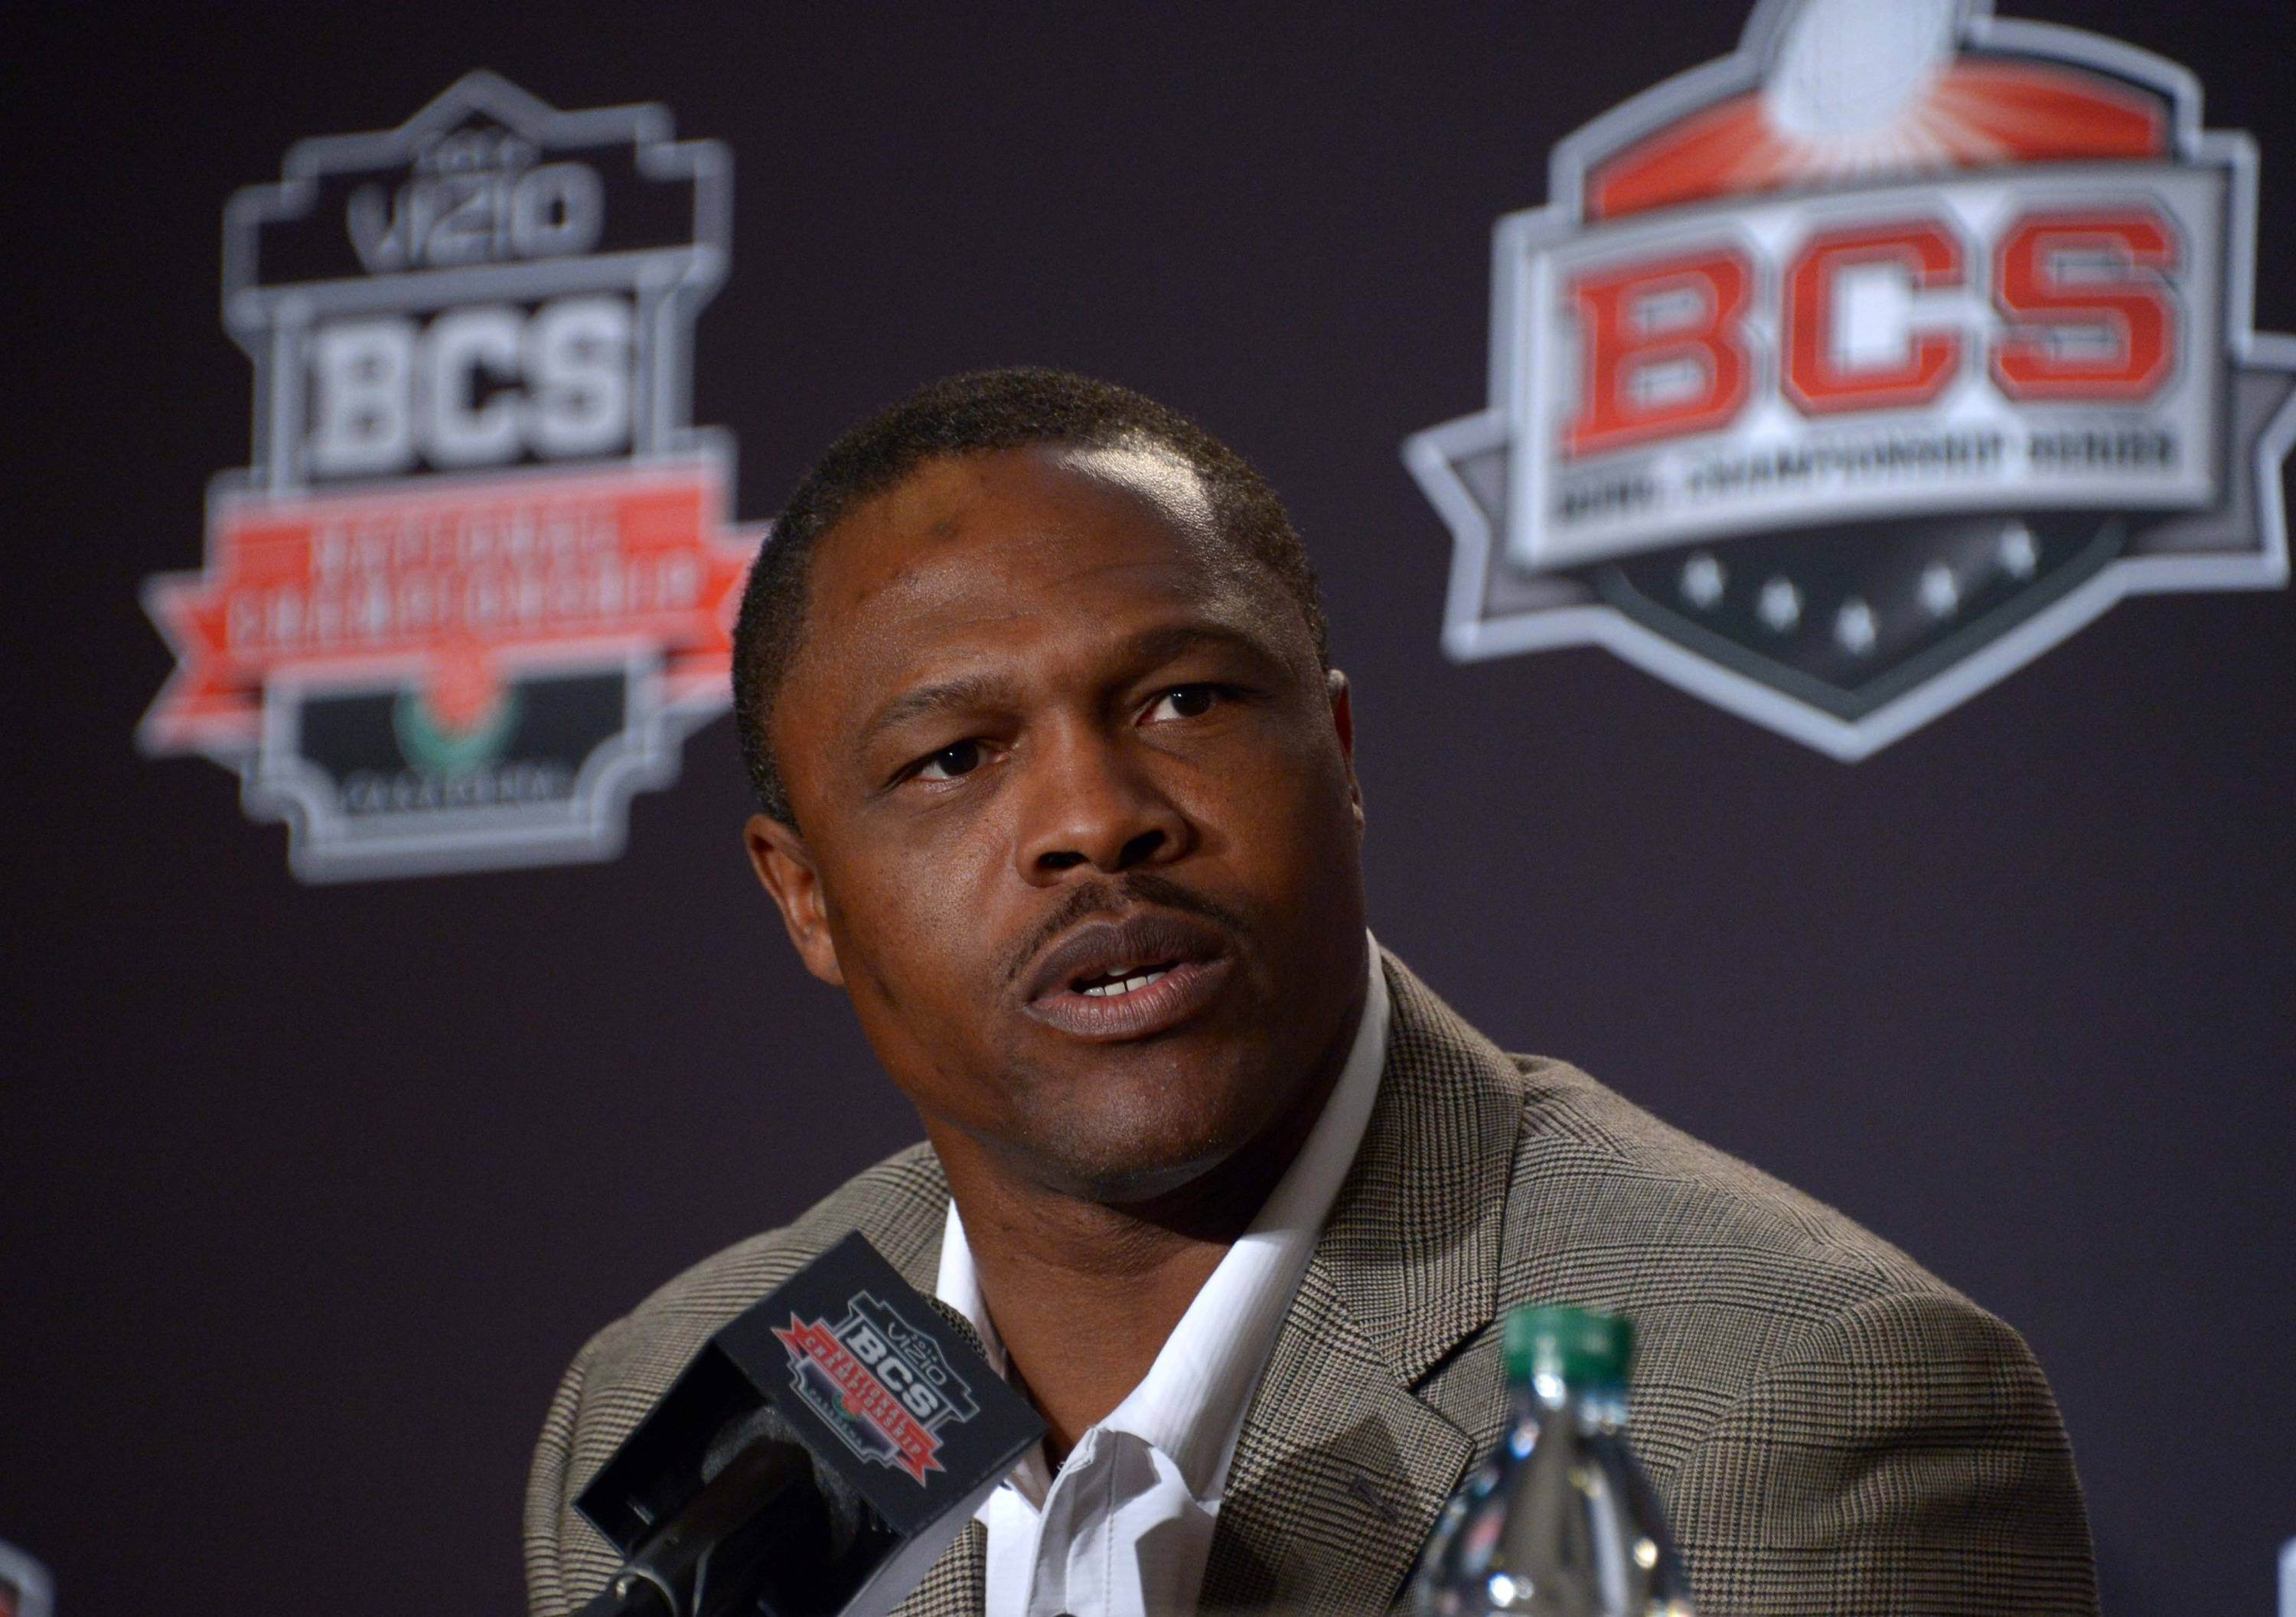 Florida State Seminoles receivers coach Lawrence Dawsey at a 2014 BCS National Championship press conference at Newport Beach Marriott. Mandatory Credit: Kirby Lee-USA TODAY Sports